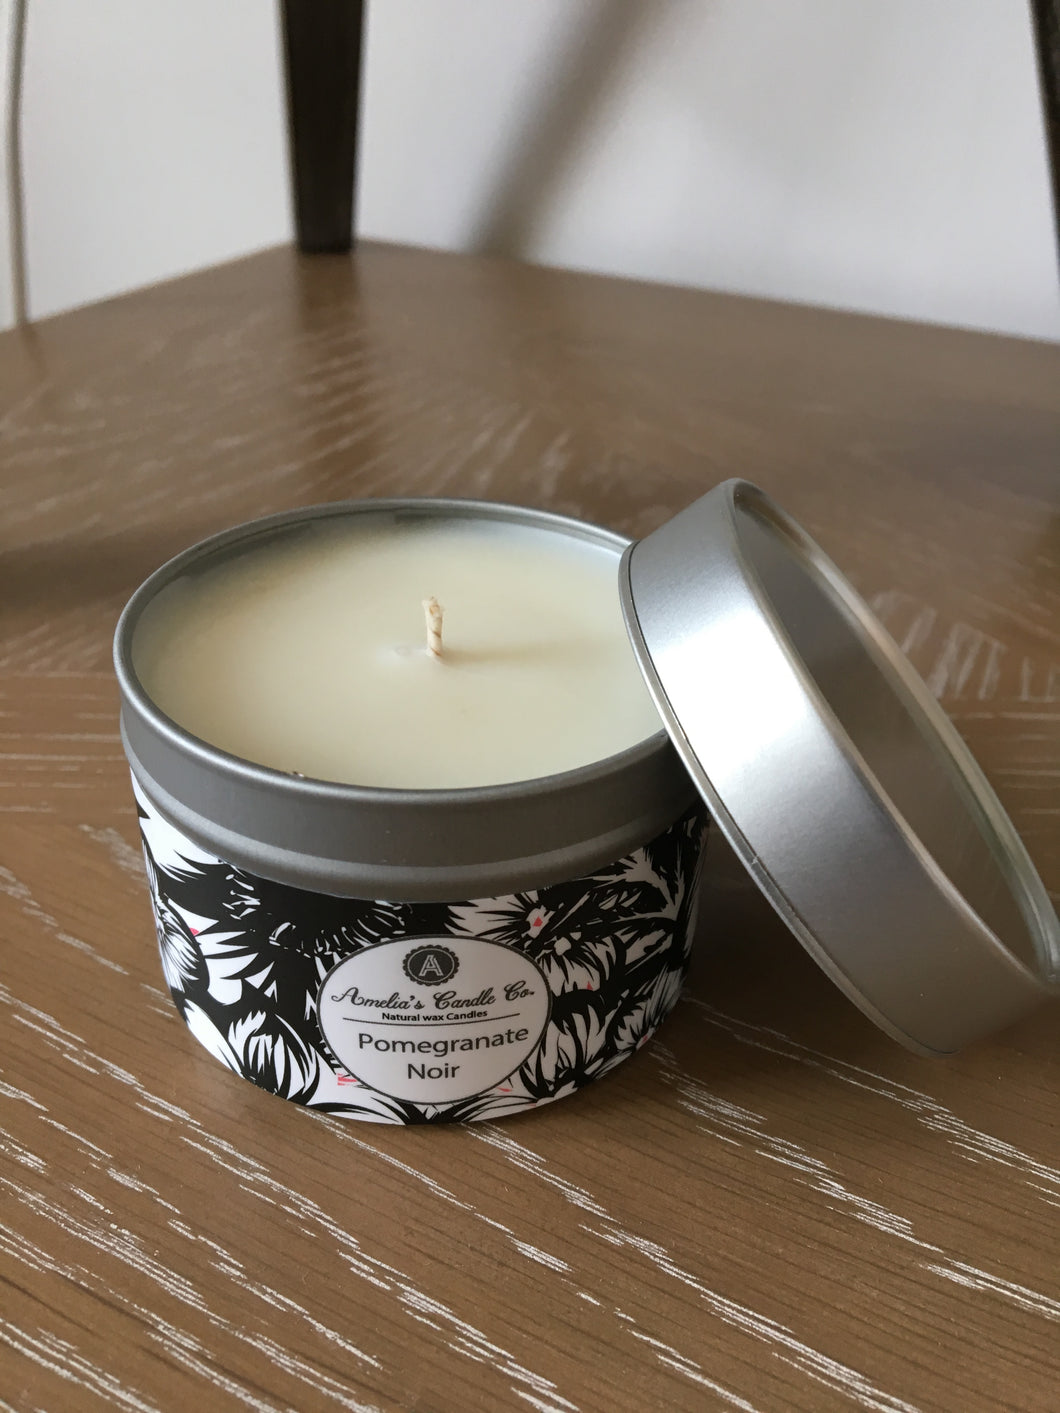 Pomegranate Noir Small Candle - Amelia's Candle Co